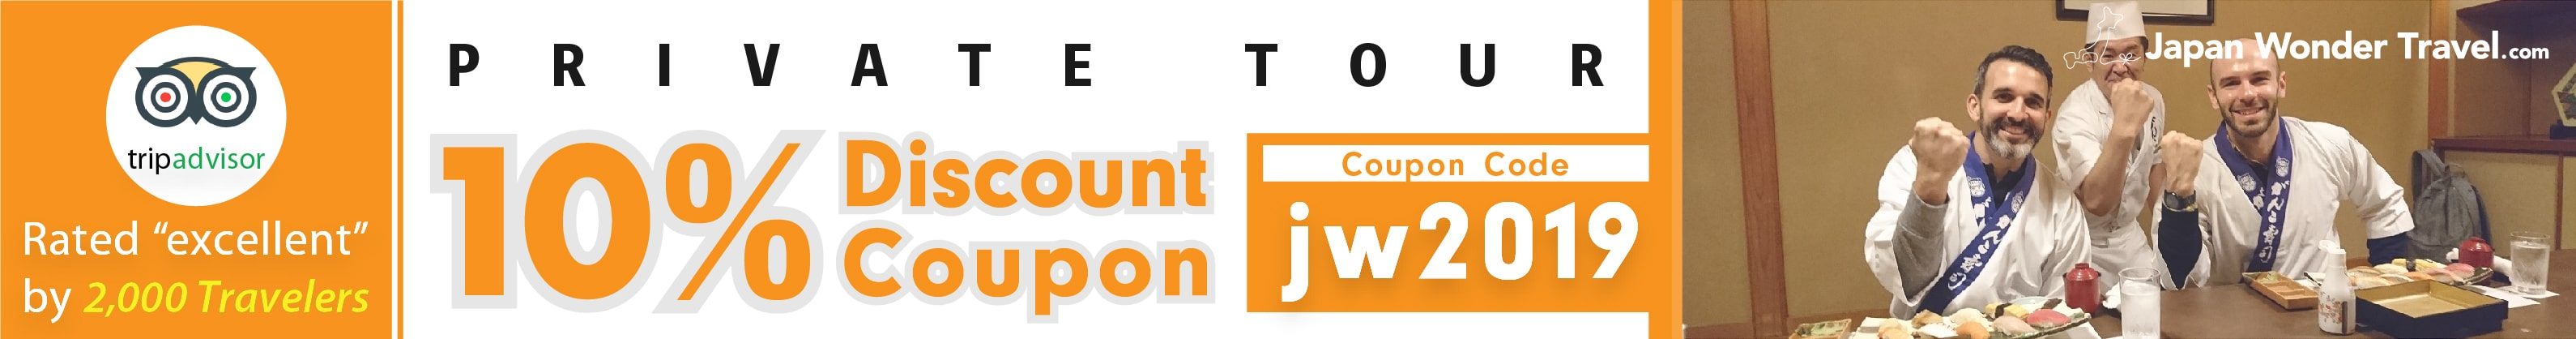 Japan Wonder Travel Coupon